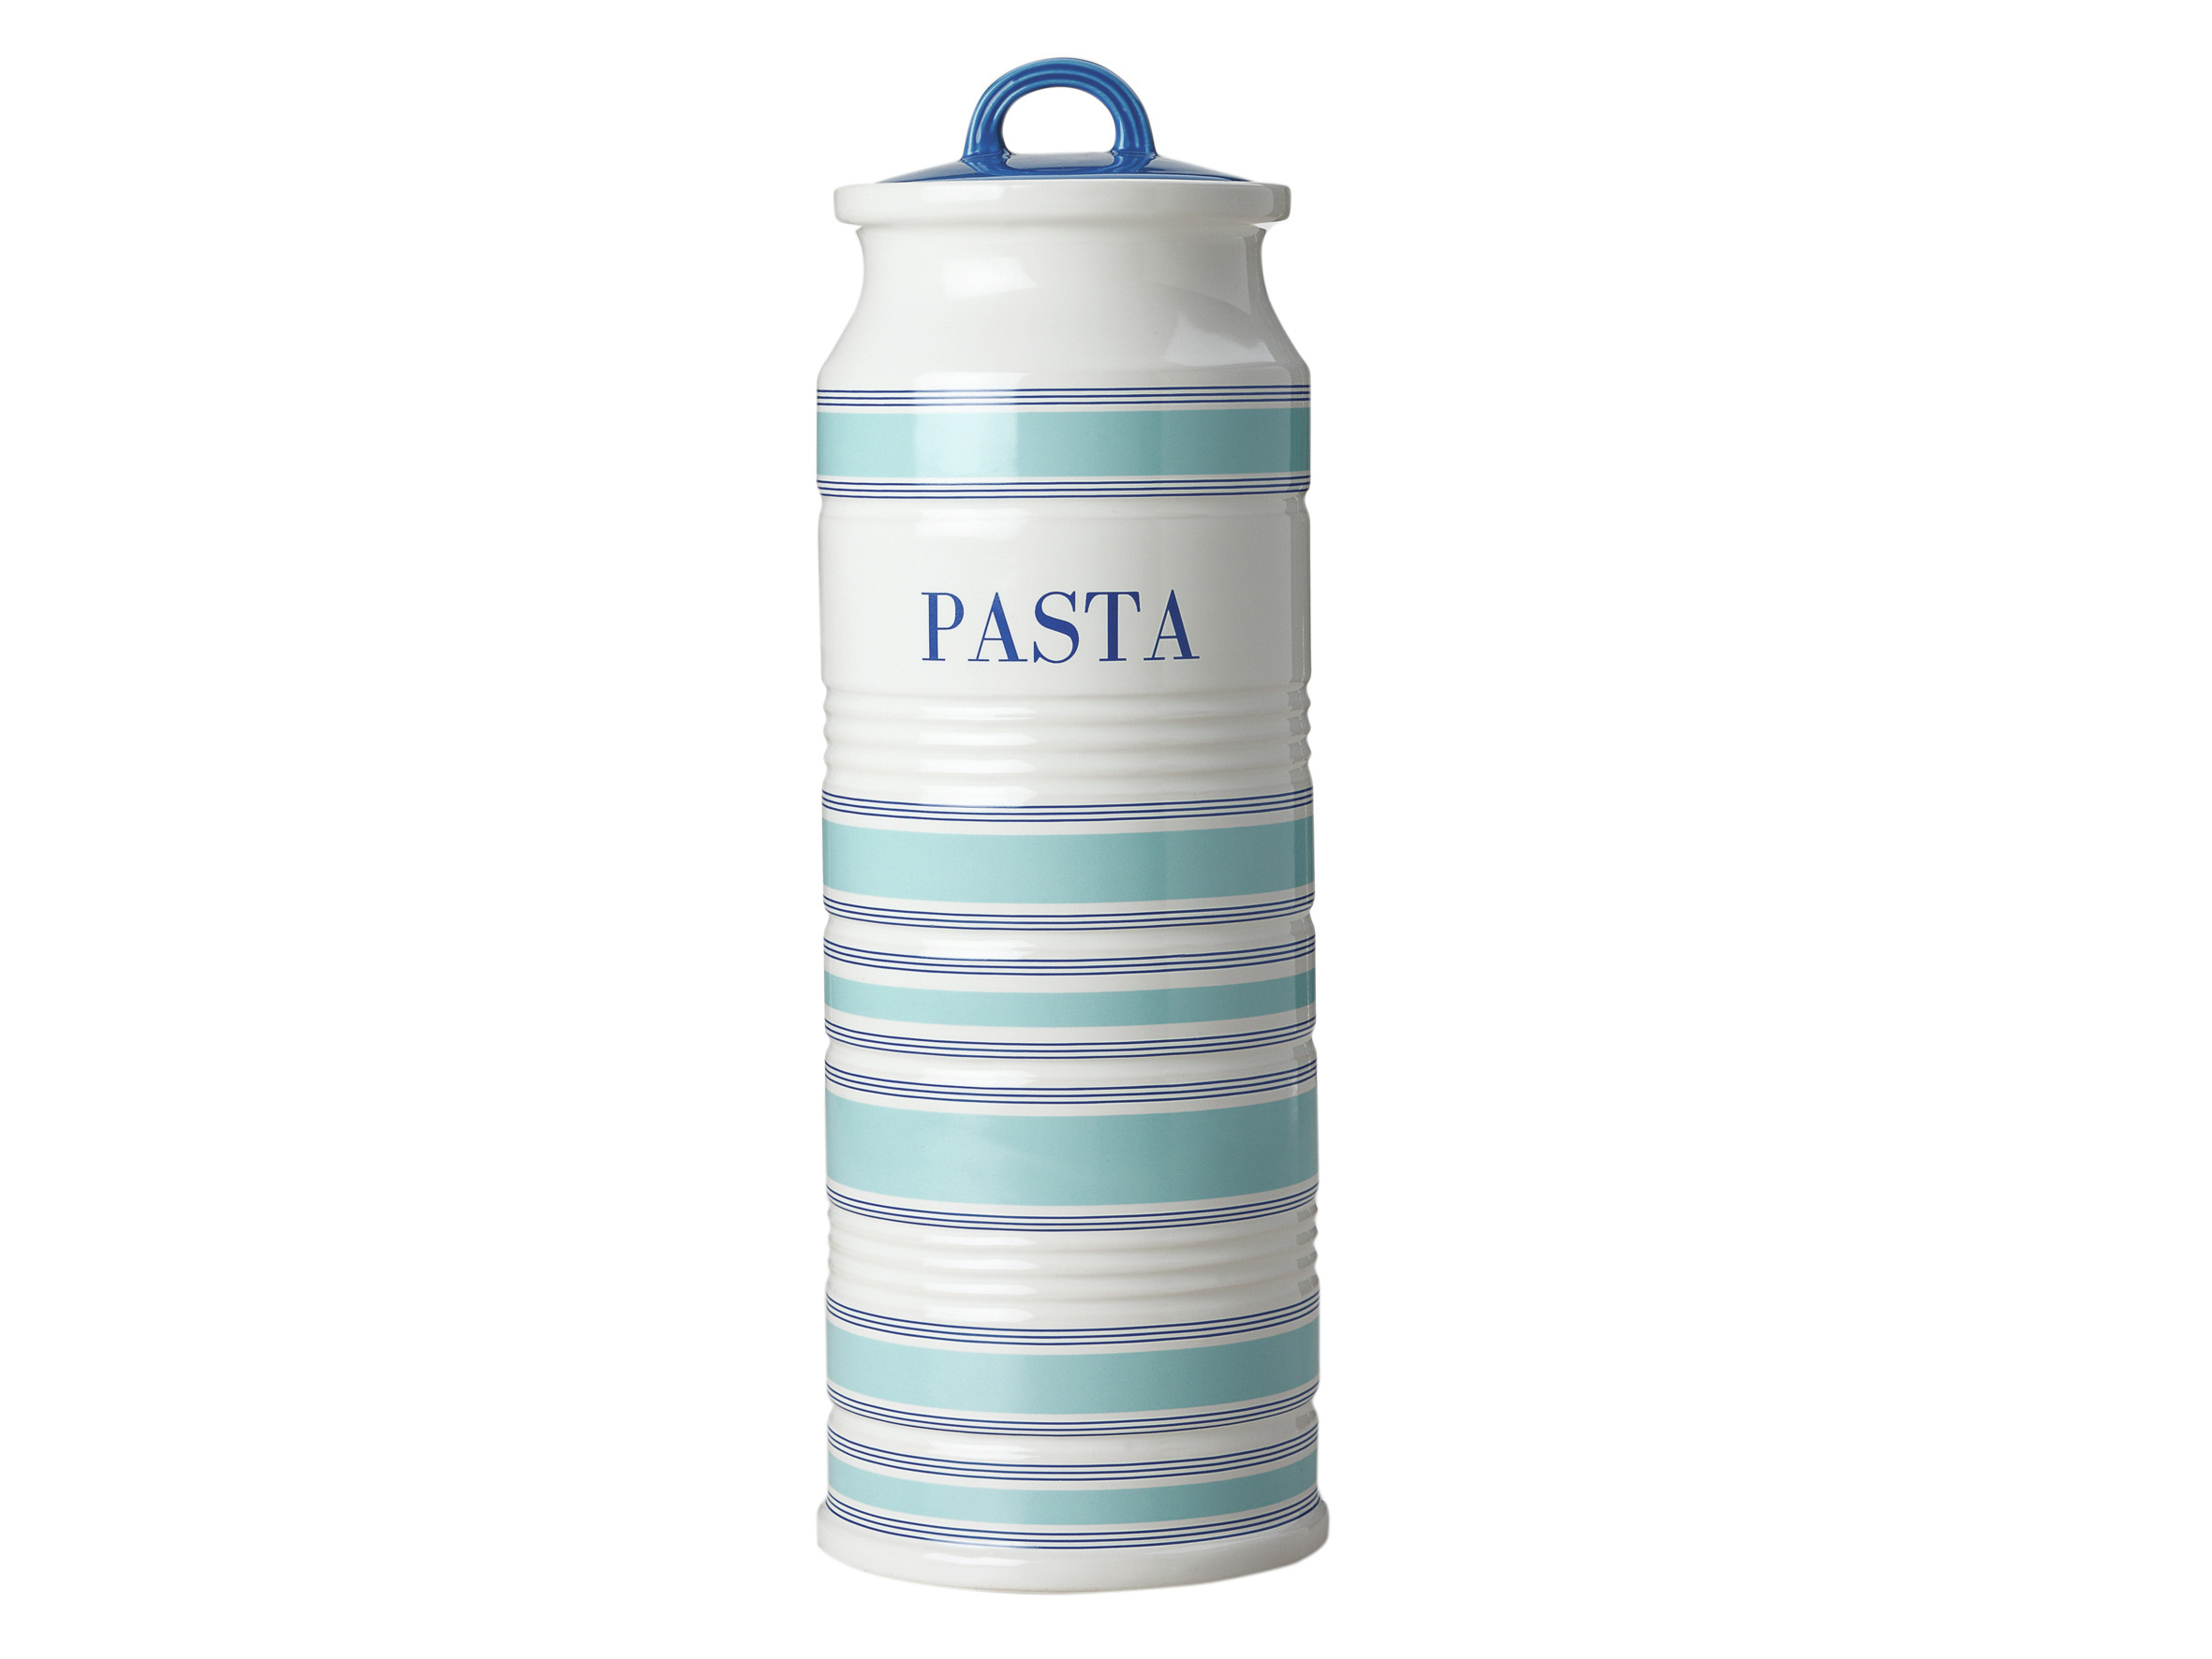 Maxwell & Williams Coastal Stripes 1.7L Pasta Canister Gift Boxed